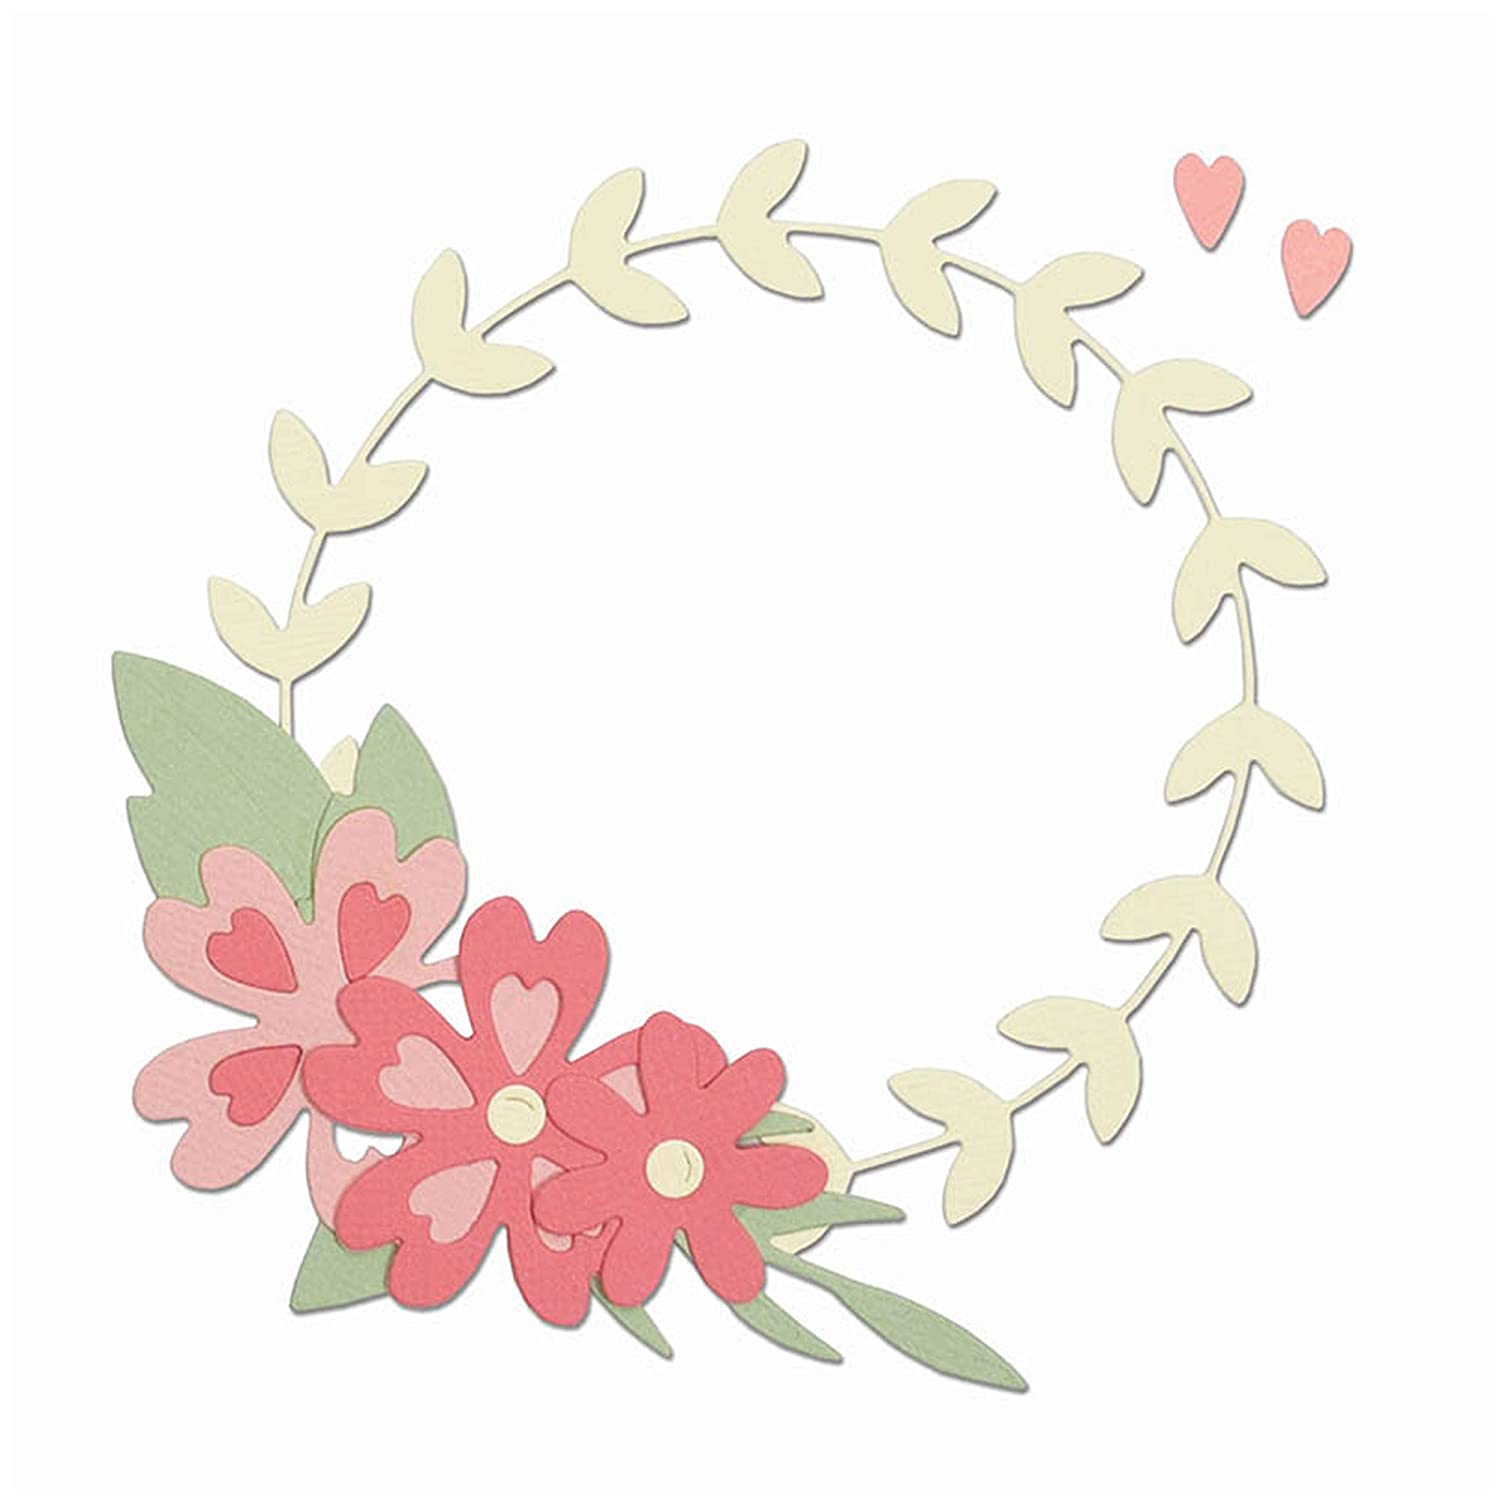 Sizzix 663377 Floral Wreath Dies, Multicolor